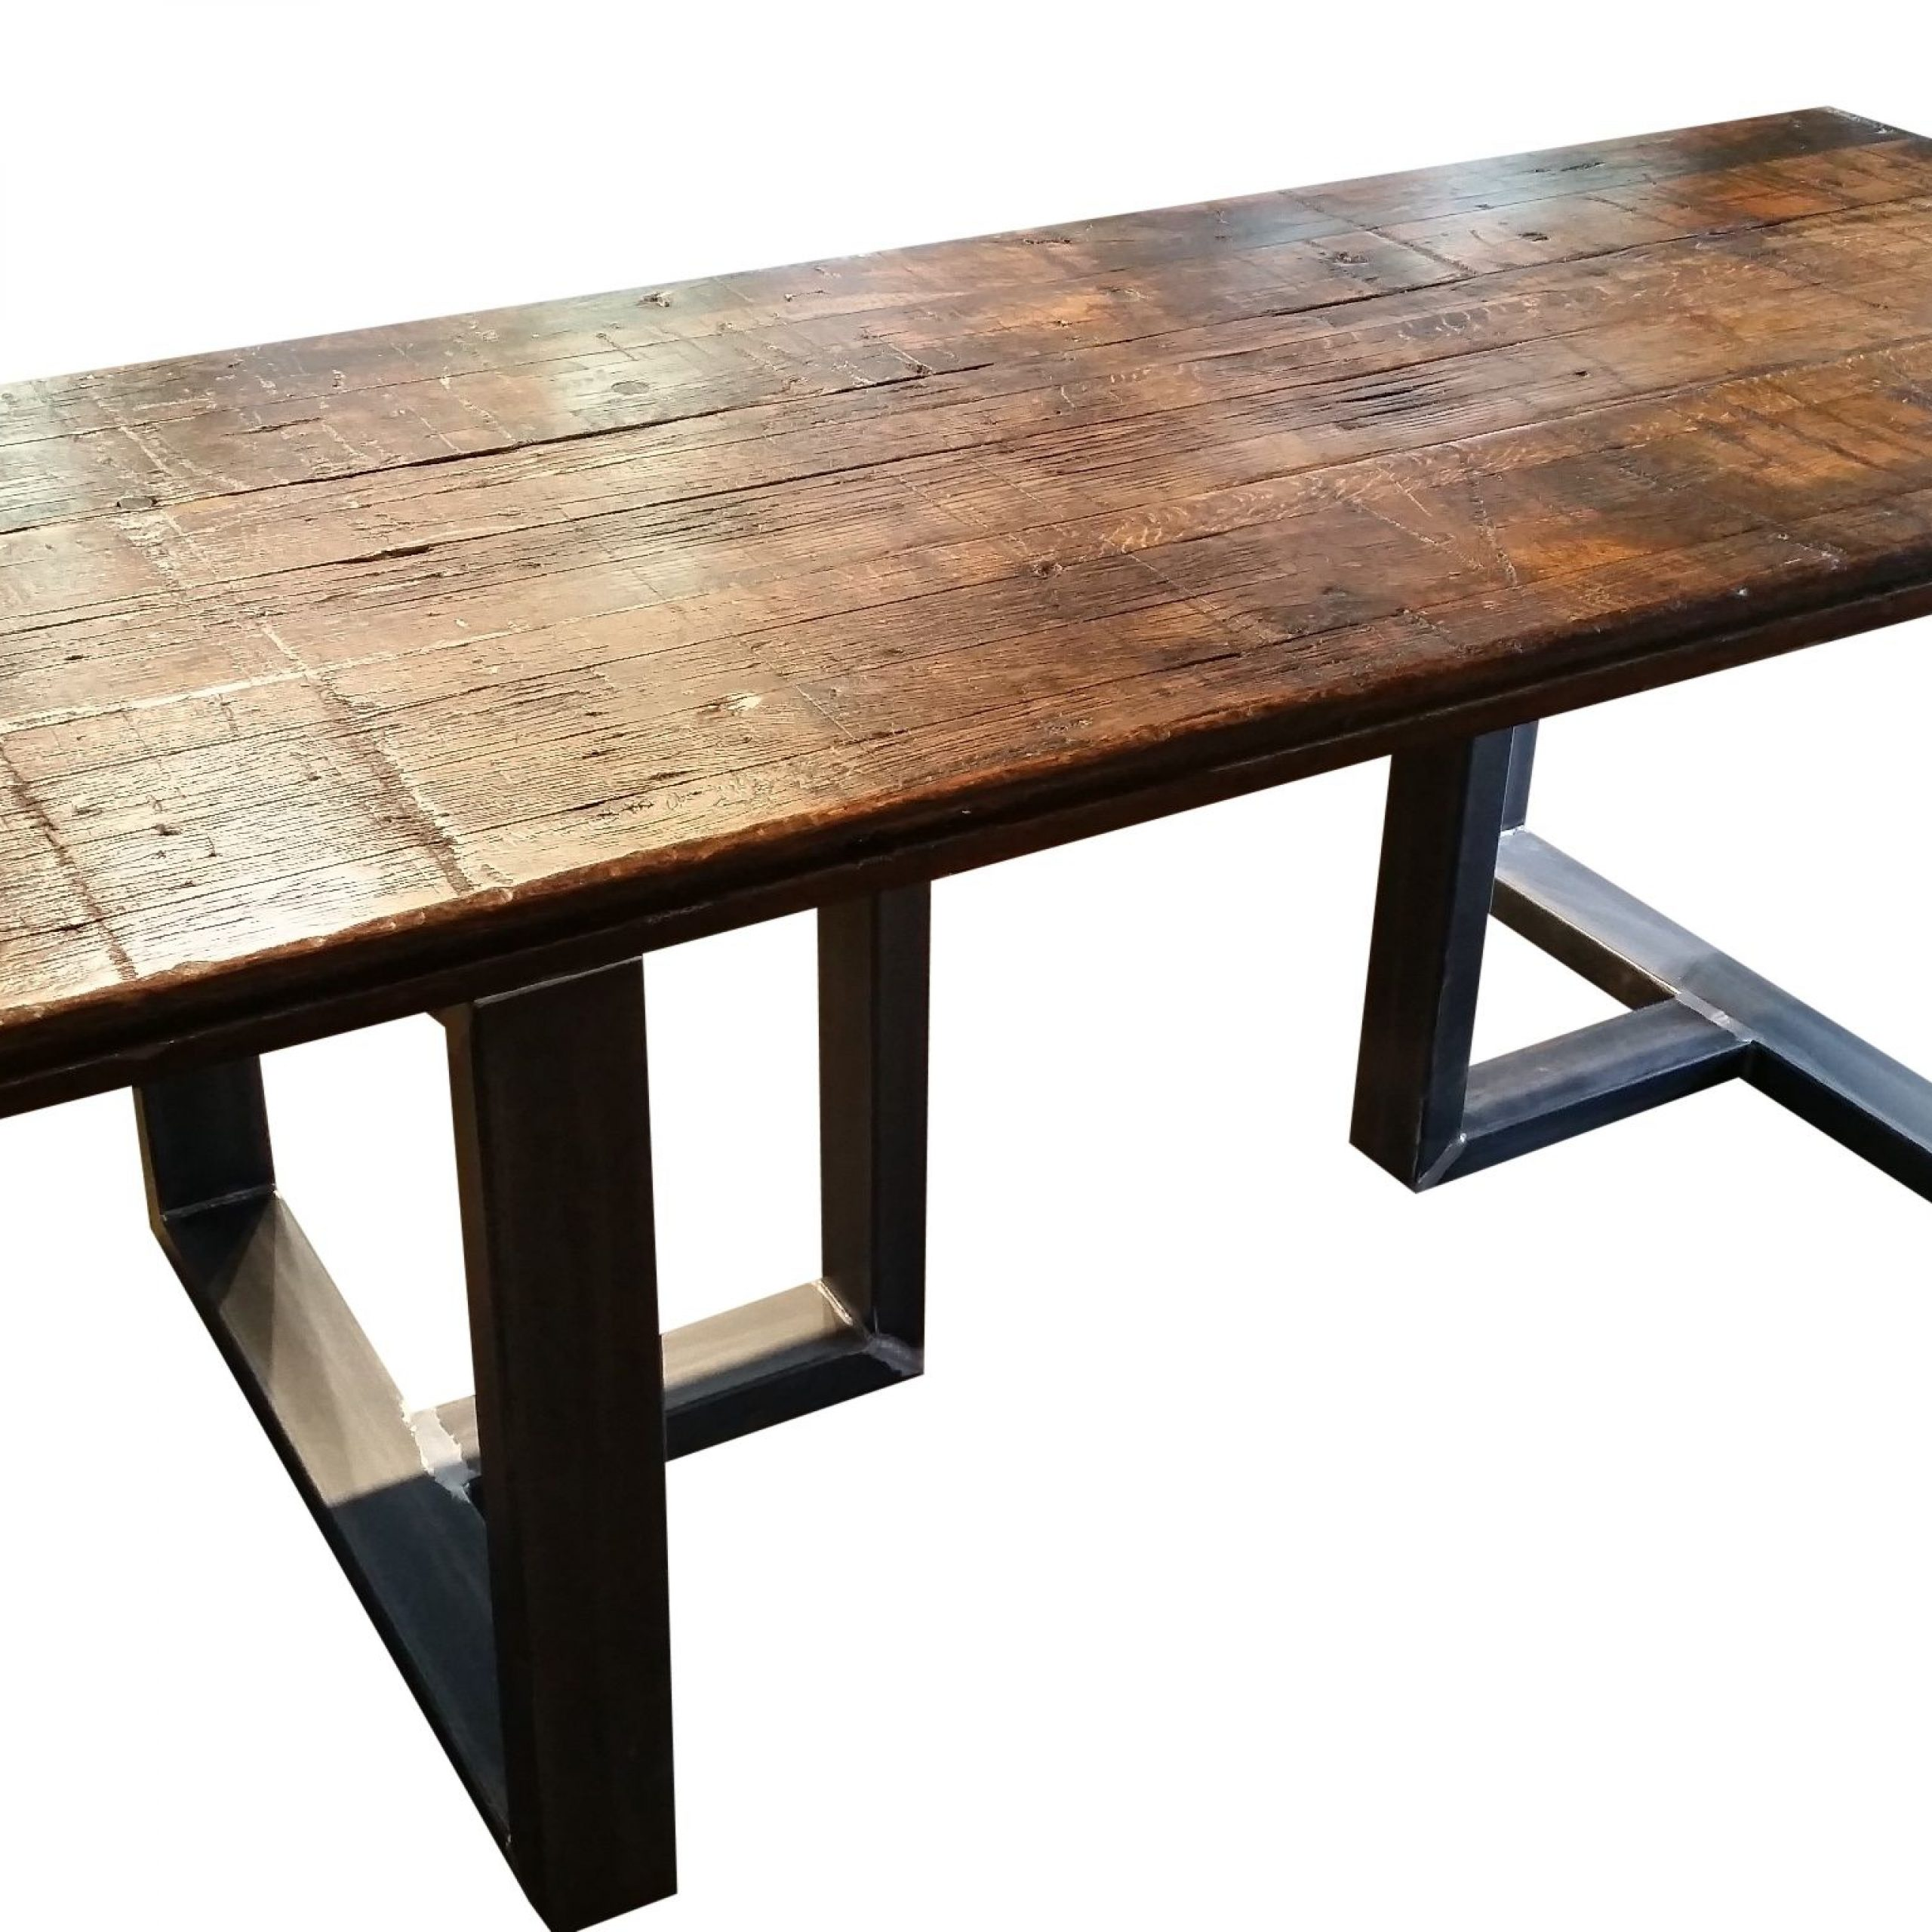 Hand Made Reclaimed Wood Dining Tableurban Ironcraft Pertaining To 2020 Iron Wood Dining Tables With Metal Legs (View 5 of 25)